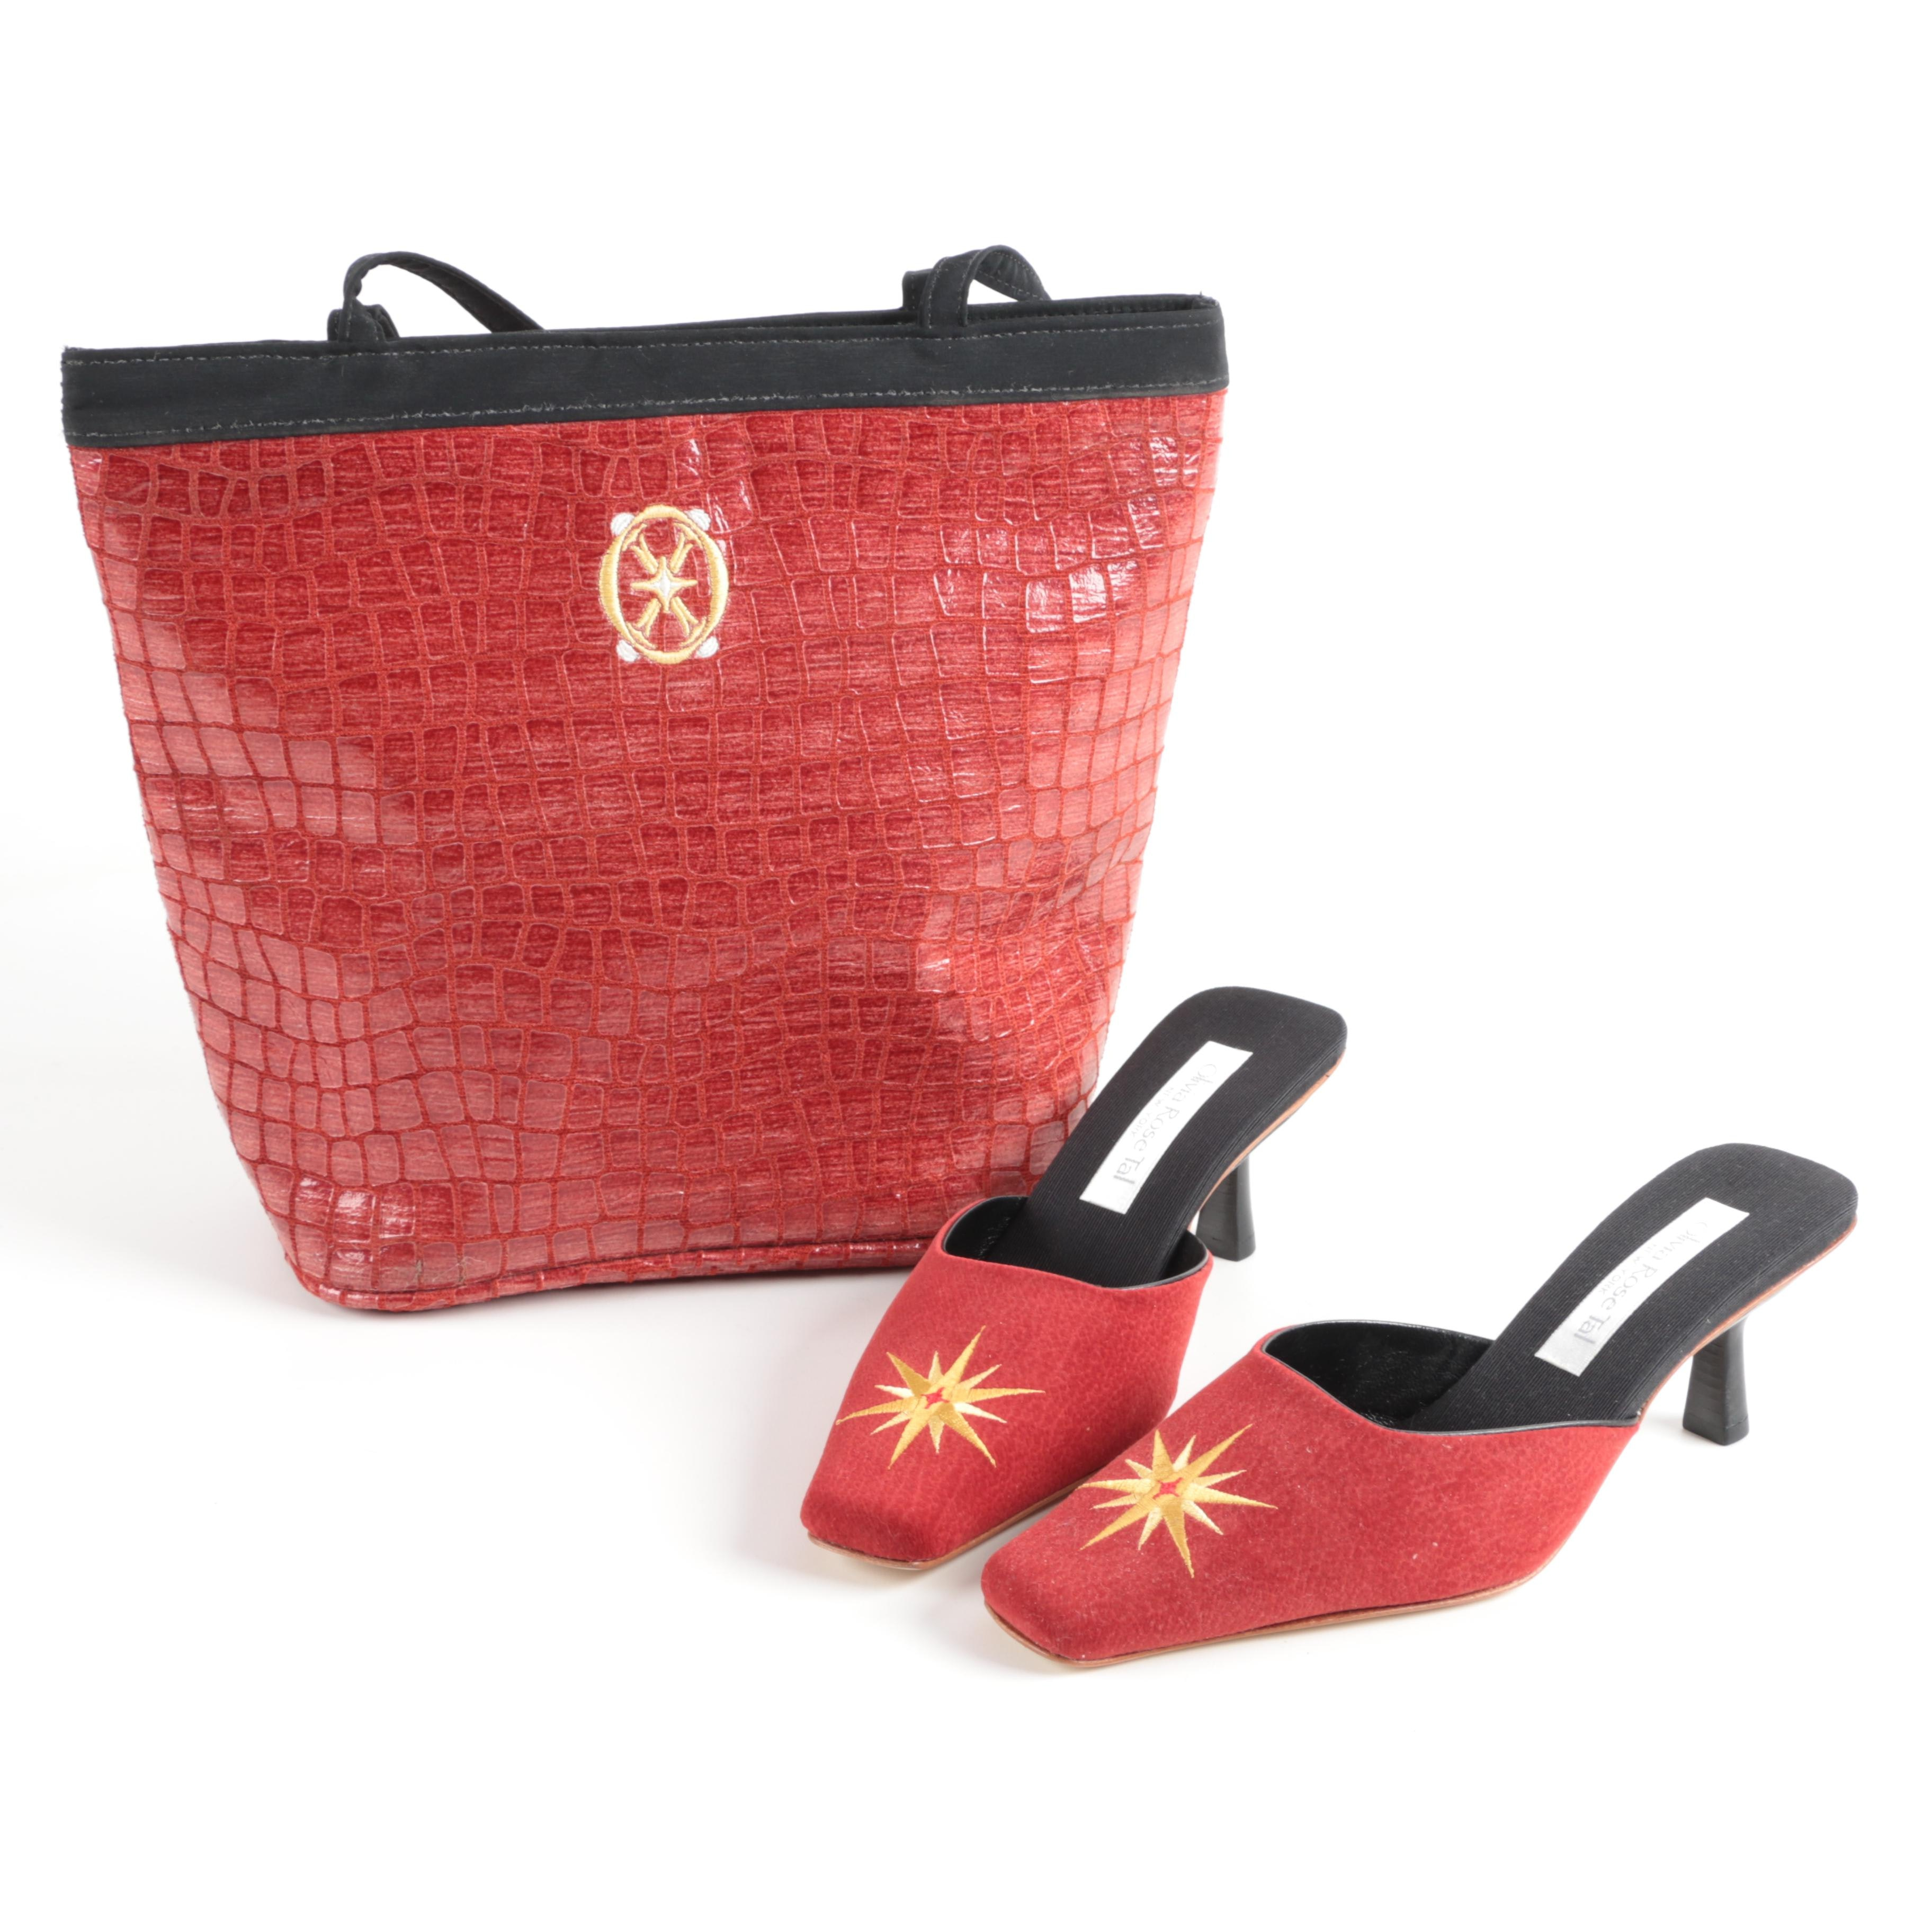 Olivia Rose Tal Matching Embroidered Mule Heels and Tote Bag